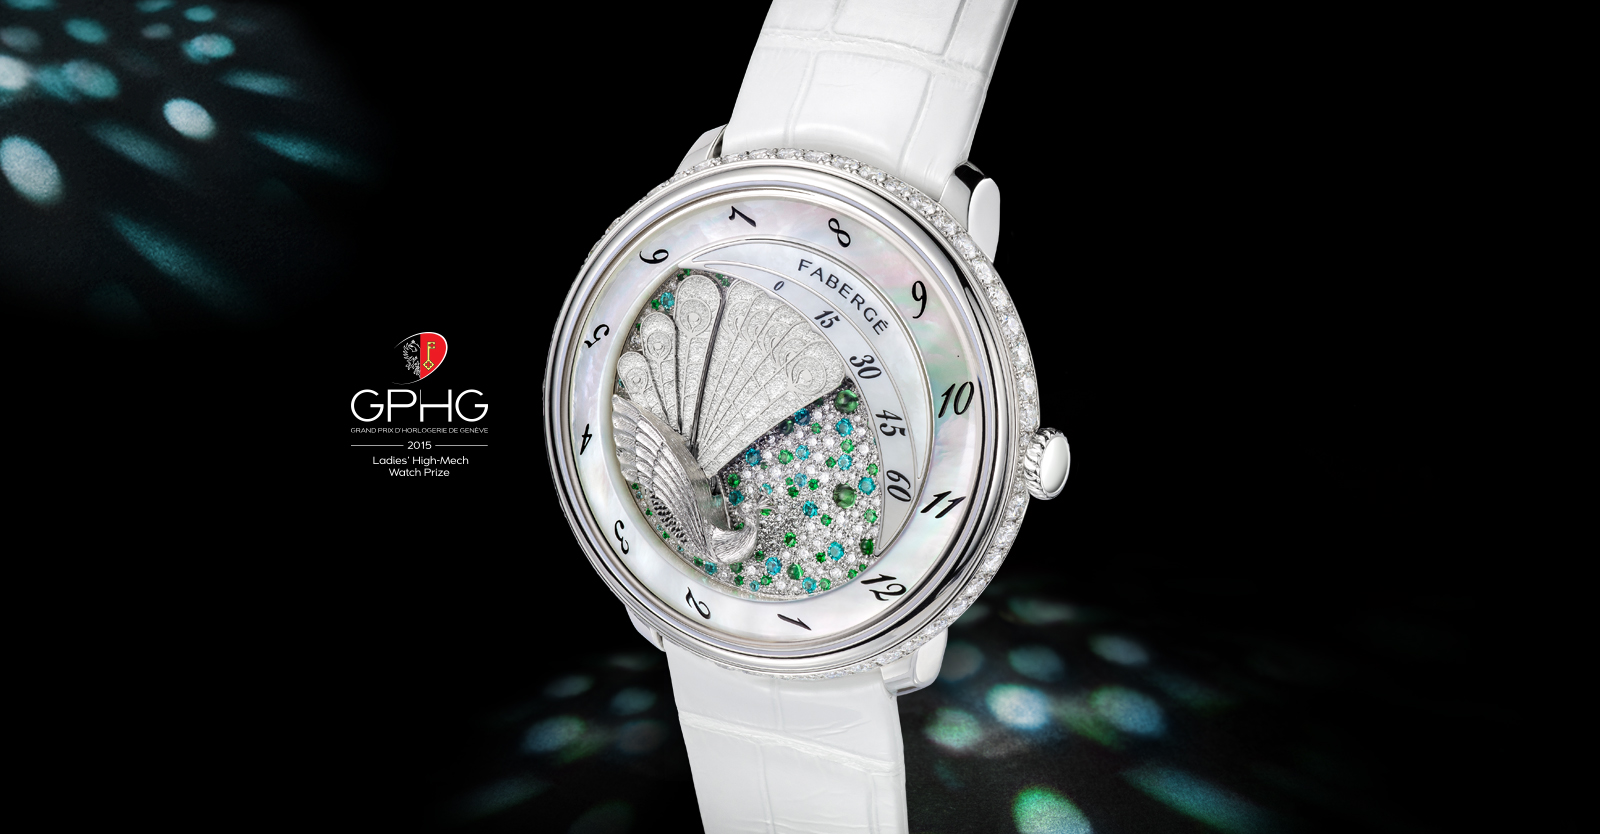 Lady Compliquee Peacock timepiece from the Fabergé Lady Compliquee Collection with multi-coloured gemstones and alligator strap.